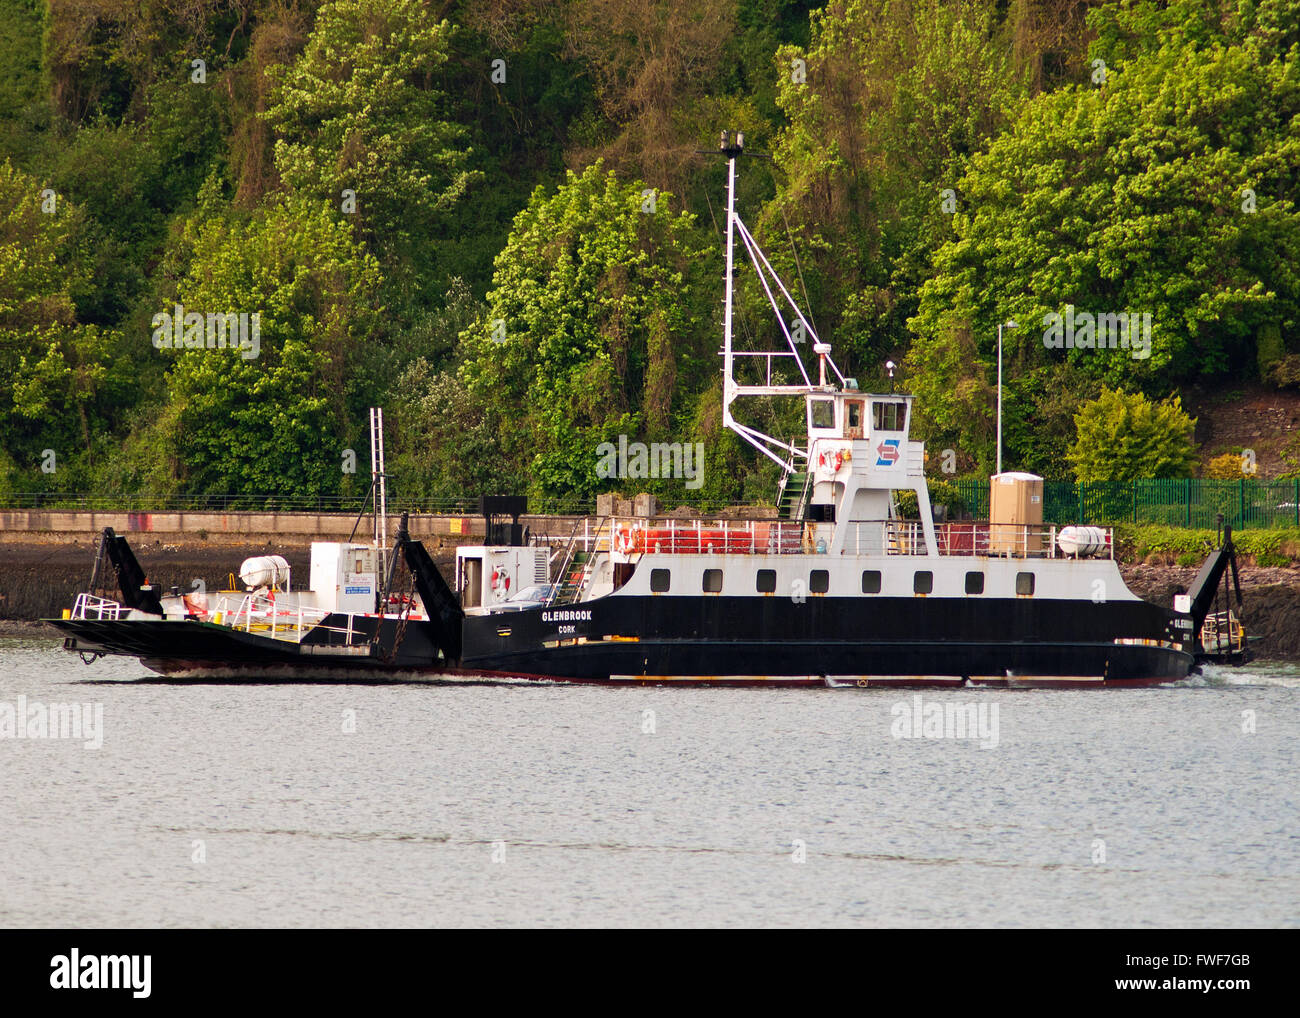 cross-river-ferry-glenbrook-makes-the-crossing-from-passage-to-rushbrooke-FWF7GB.jpg